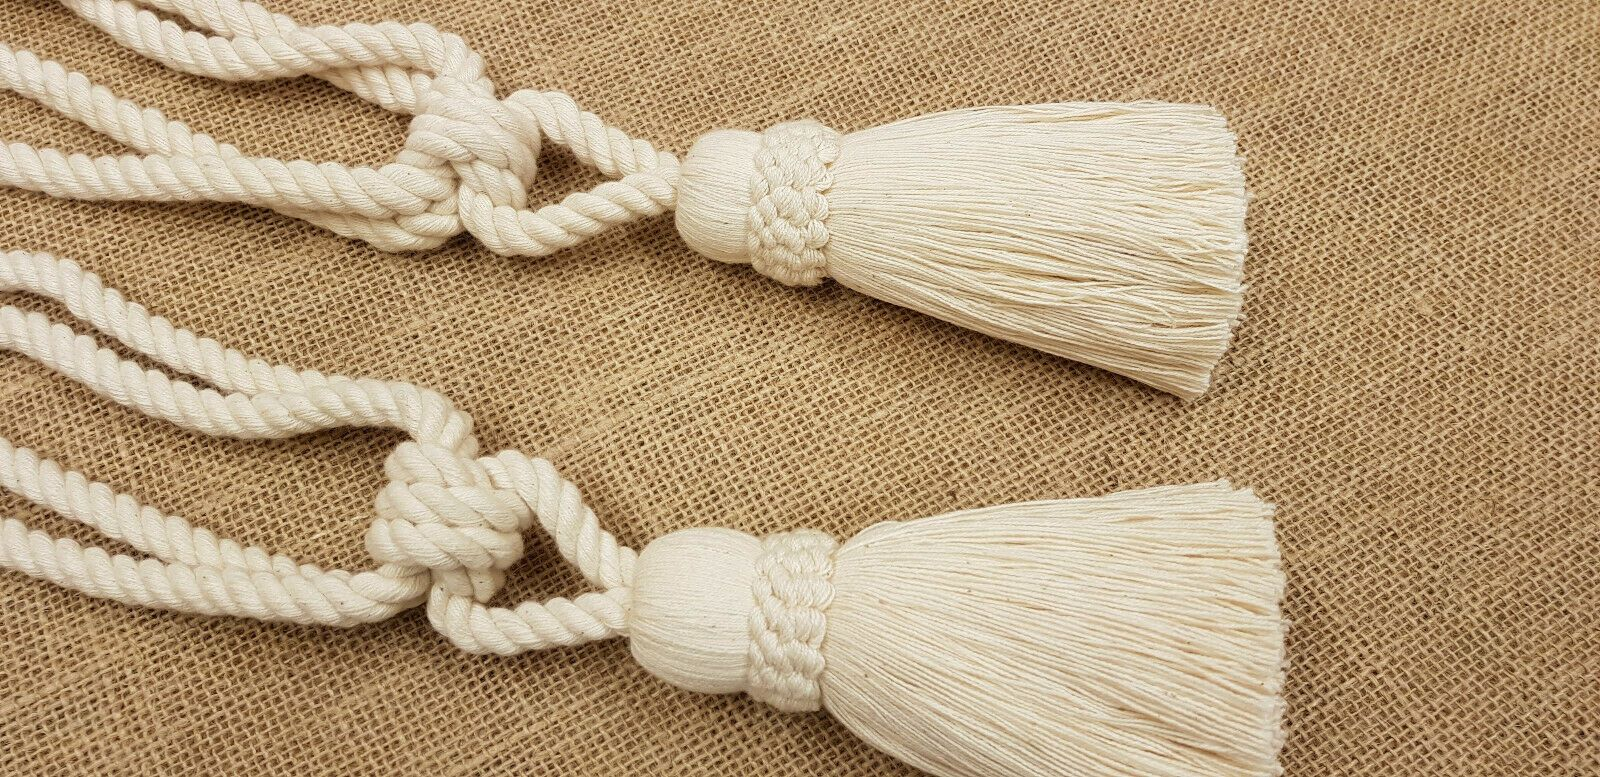 Curtains Blinds Accessories 3 Pairs Of Natural Cotton Rope Tie Backs Cord Ties Cable Tiebacks Home Furniture Diy Tohoku Morinagamilk Co Jp